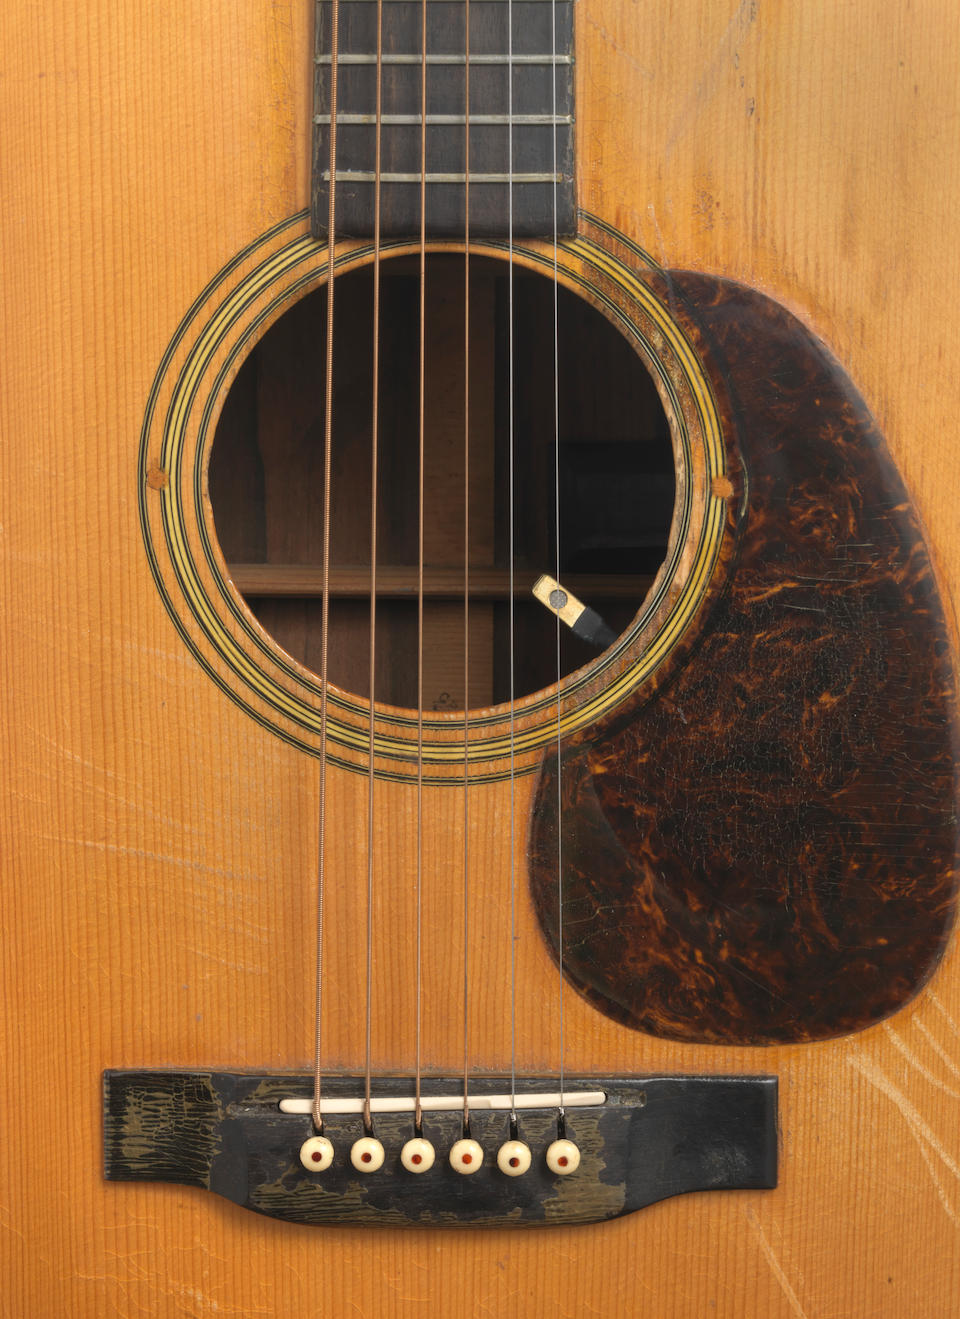 A MARTIN  D-28 ACOUSTIC GUITAR PLAYED BY JERRY GARCIA ON THE FESTIVAL EXPRESS TOUR, CANADA 1970